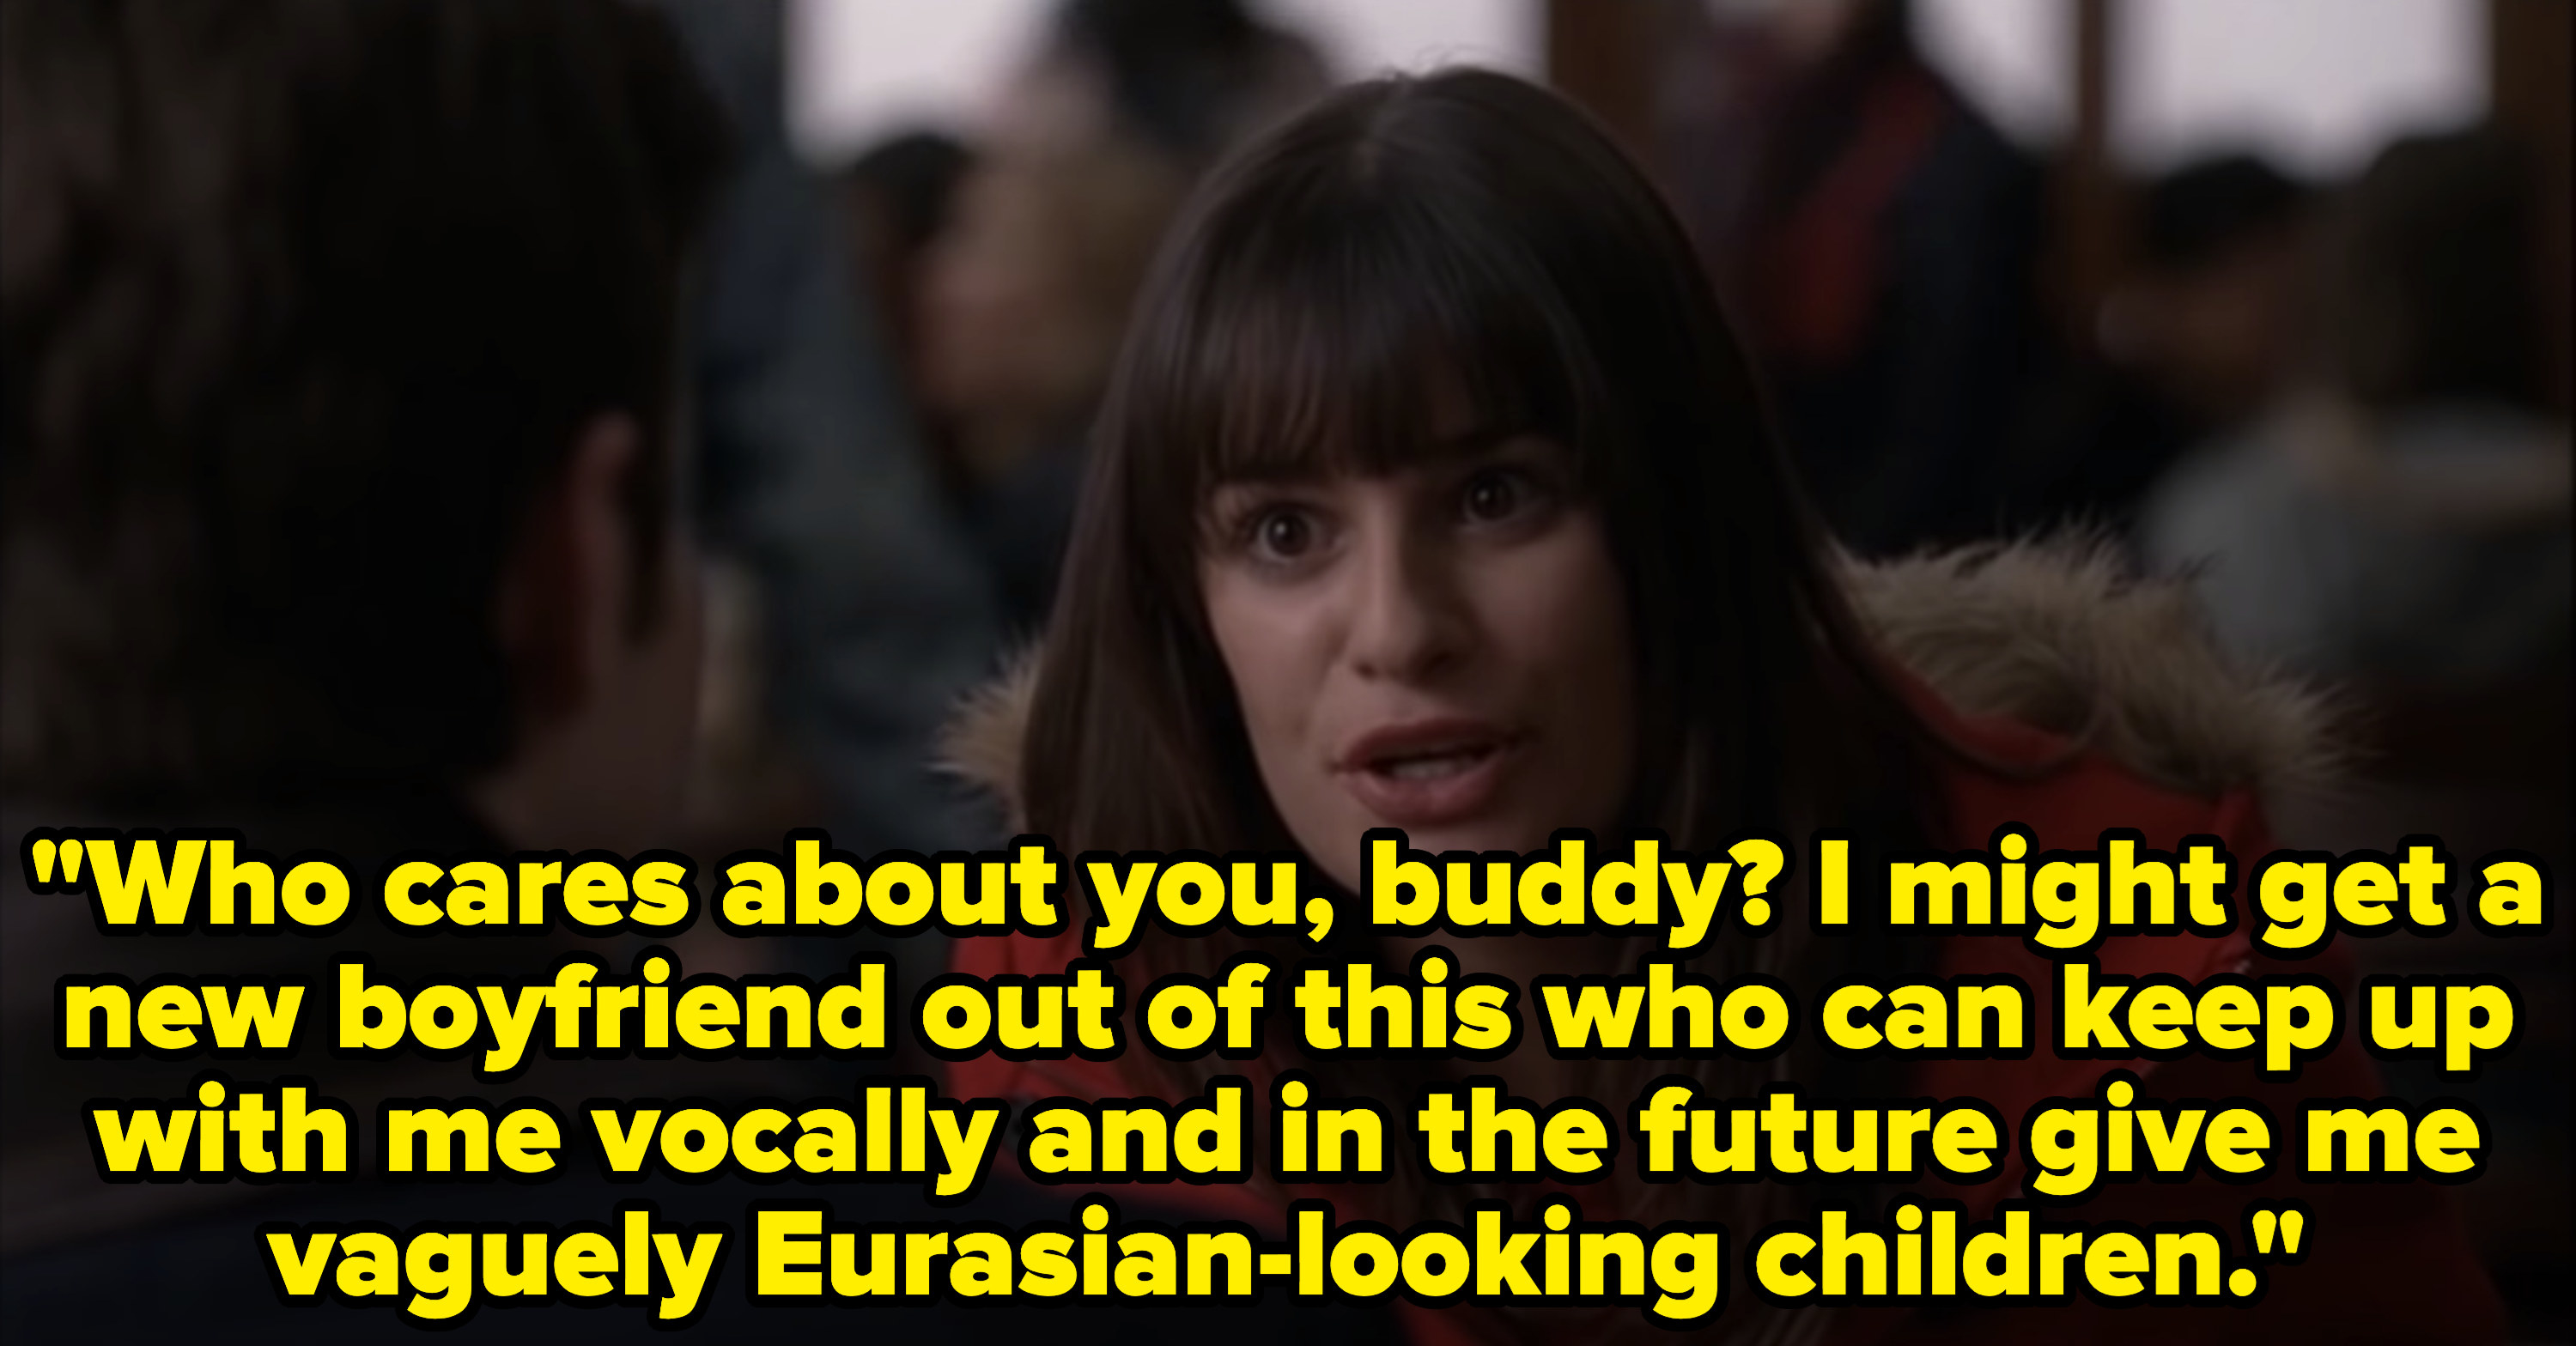 "Rachel says to Kurt: ""Who cares about you buddy? I might get a new boyfriend out of this who can keep up with me vocally and in the future give me vaguely Eurasian-looking children."""